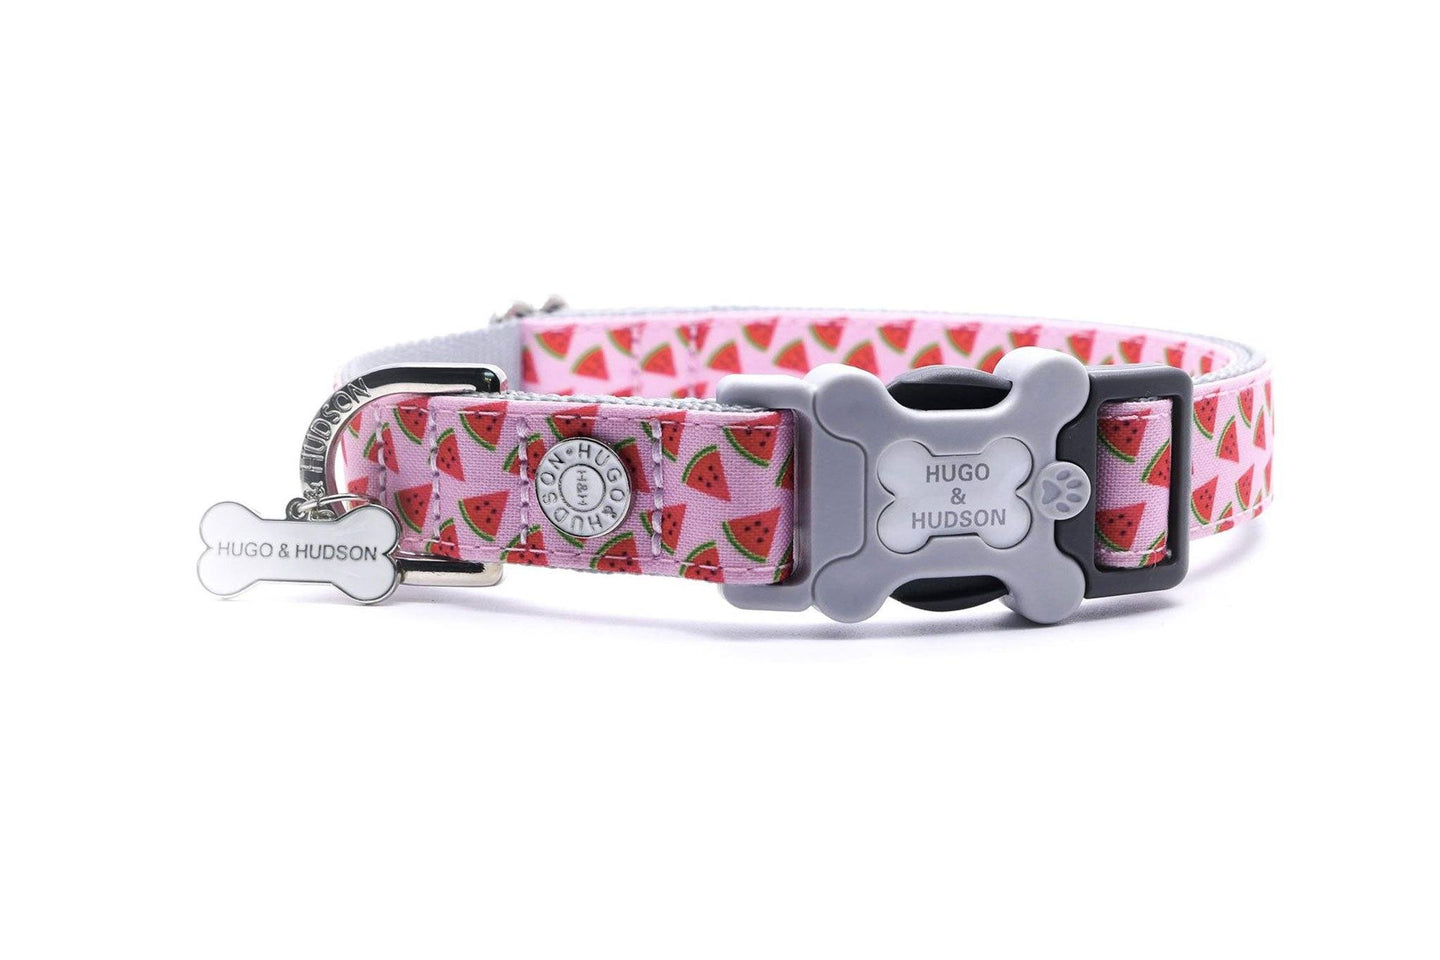 Metal Bucke Dog Collar - Hugo & Hudson Watermelon Premium Dog Collar